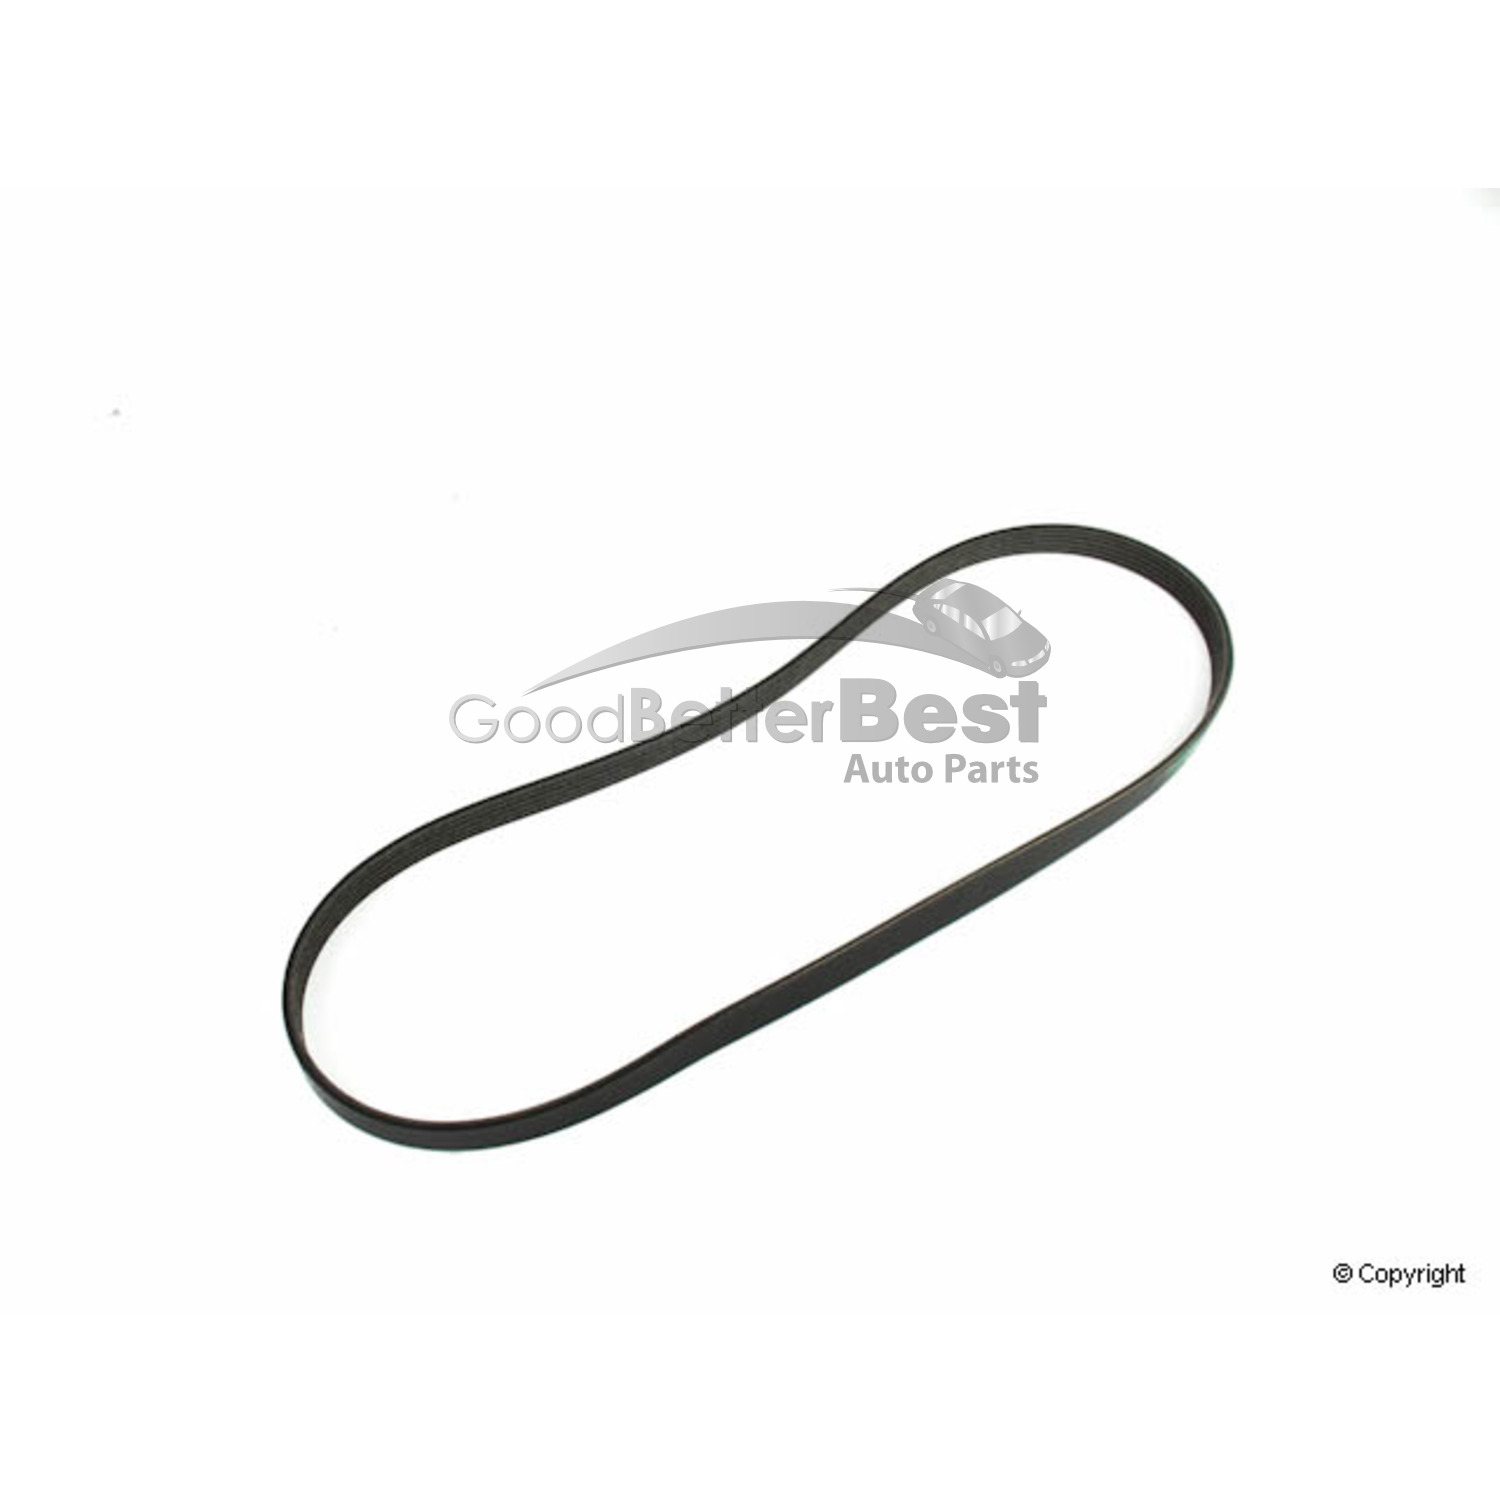 One New Mitsuboshi Serpentine Belt 5pk For Audi